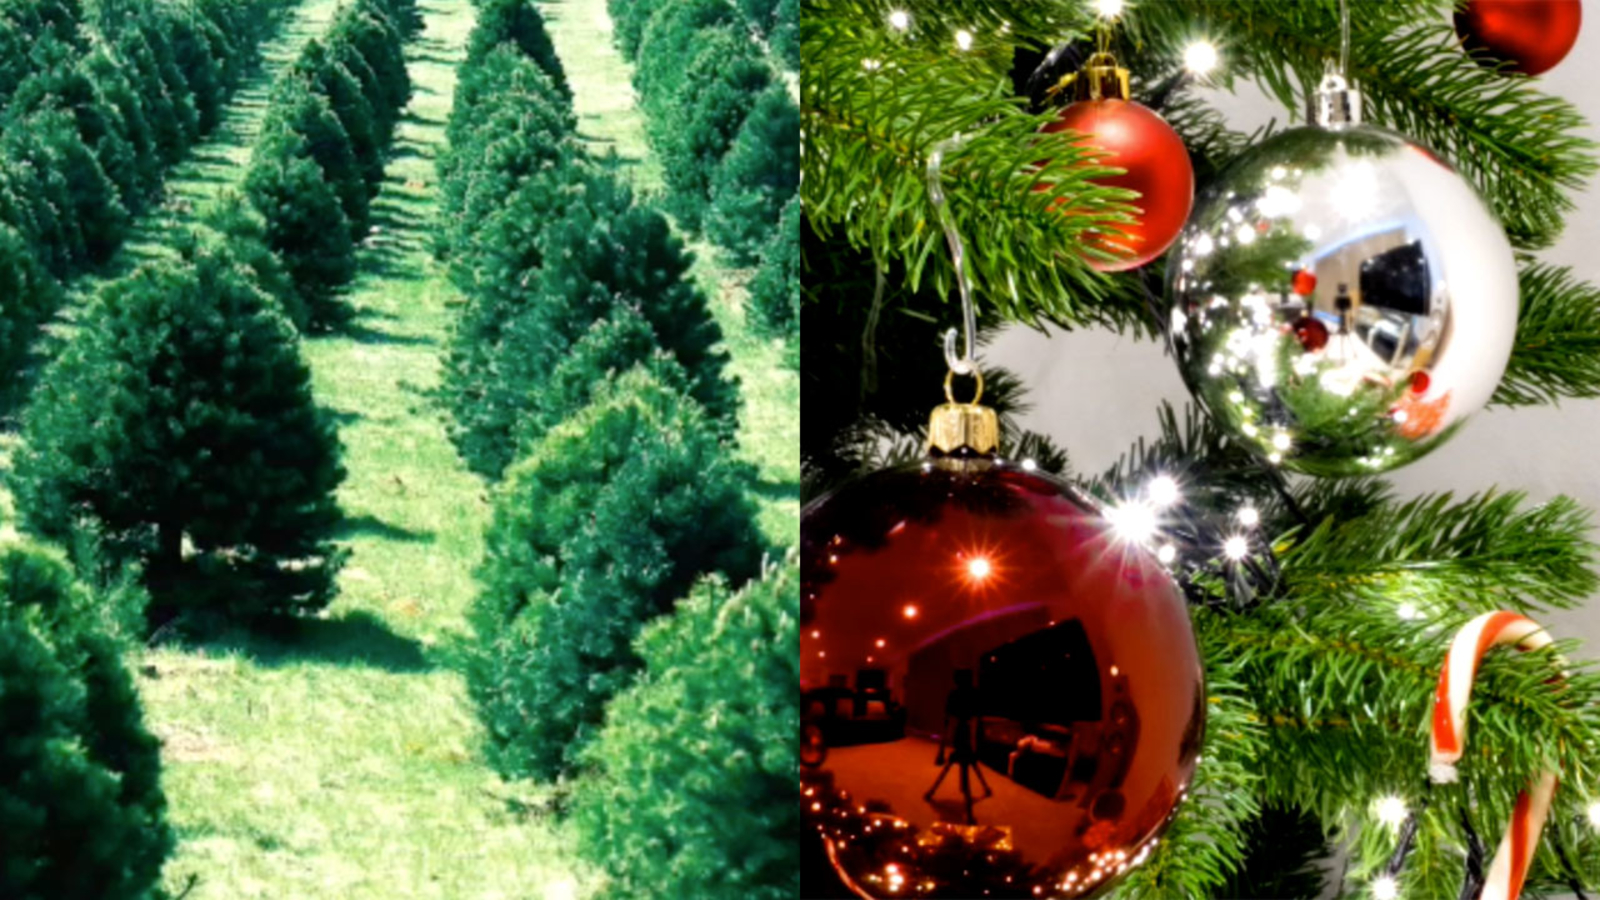 Real Or Fake Christmas Tree? The Pros And Cons Of Cutting